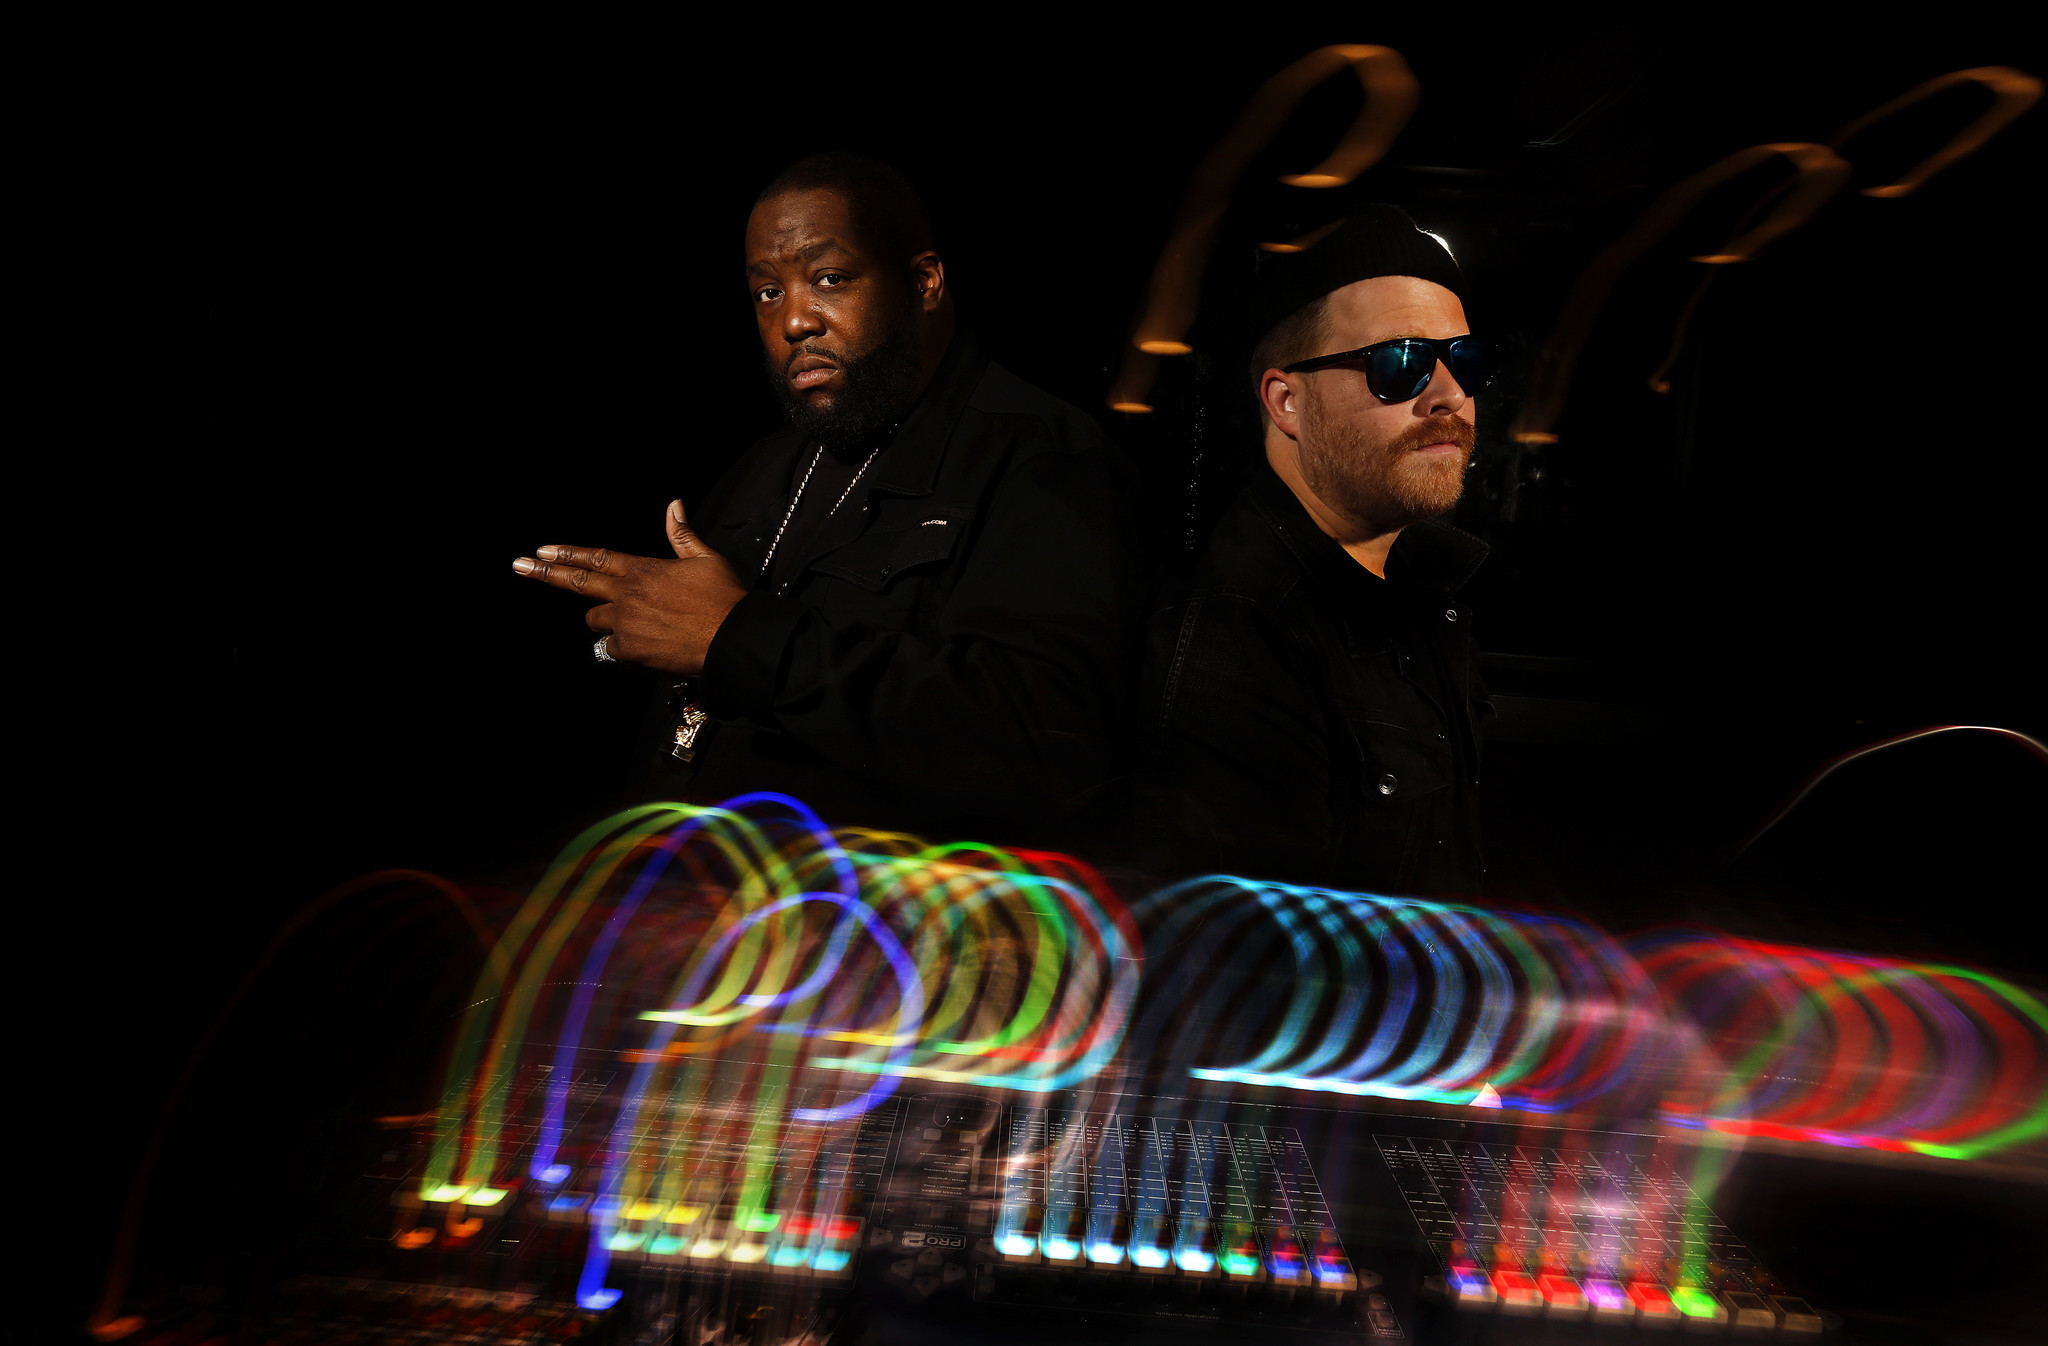 Killer Mike (Michael Render), left, and El-P (Jaime Meline) of the rap duo Run the Jewels. (Mel Melcon / Los Angeles Times)